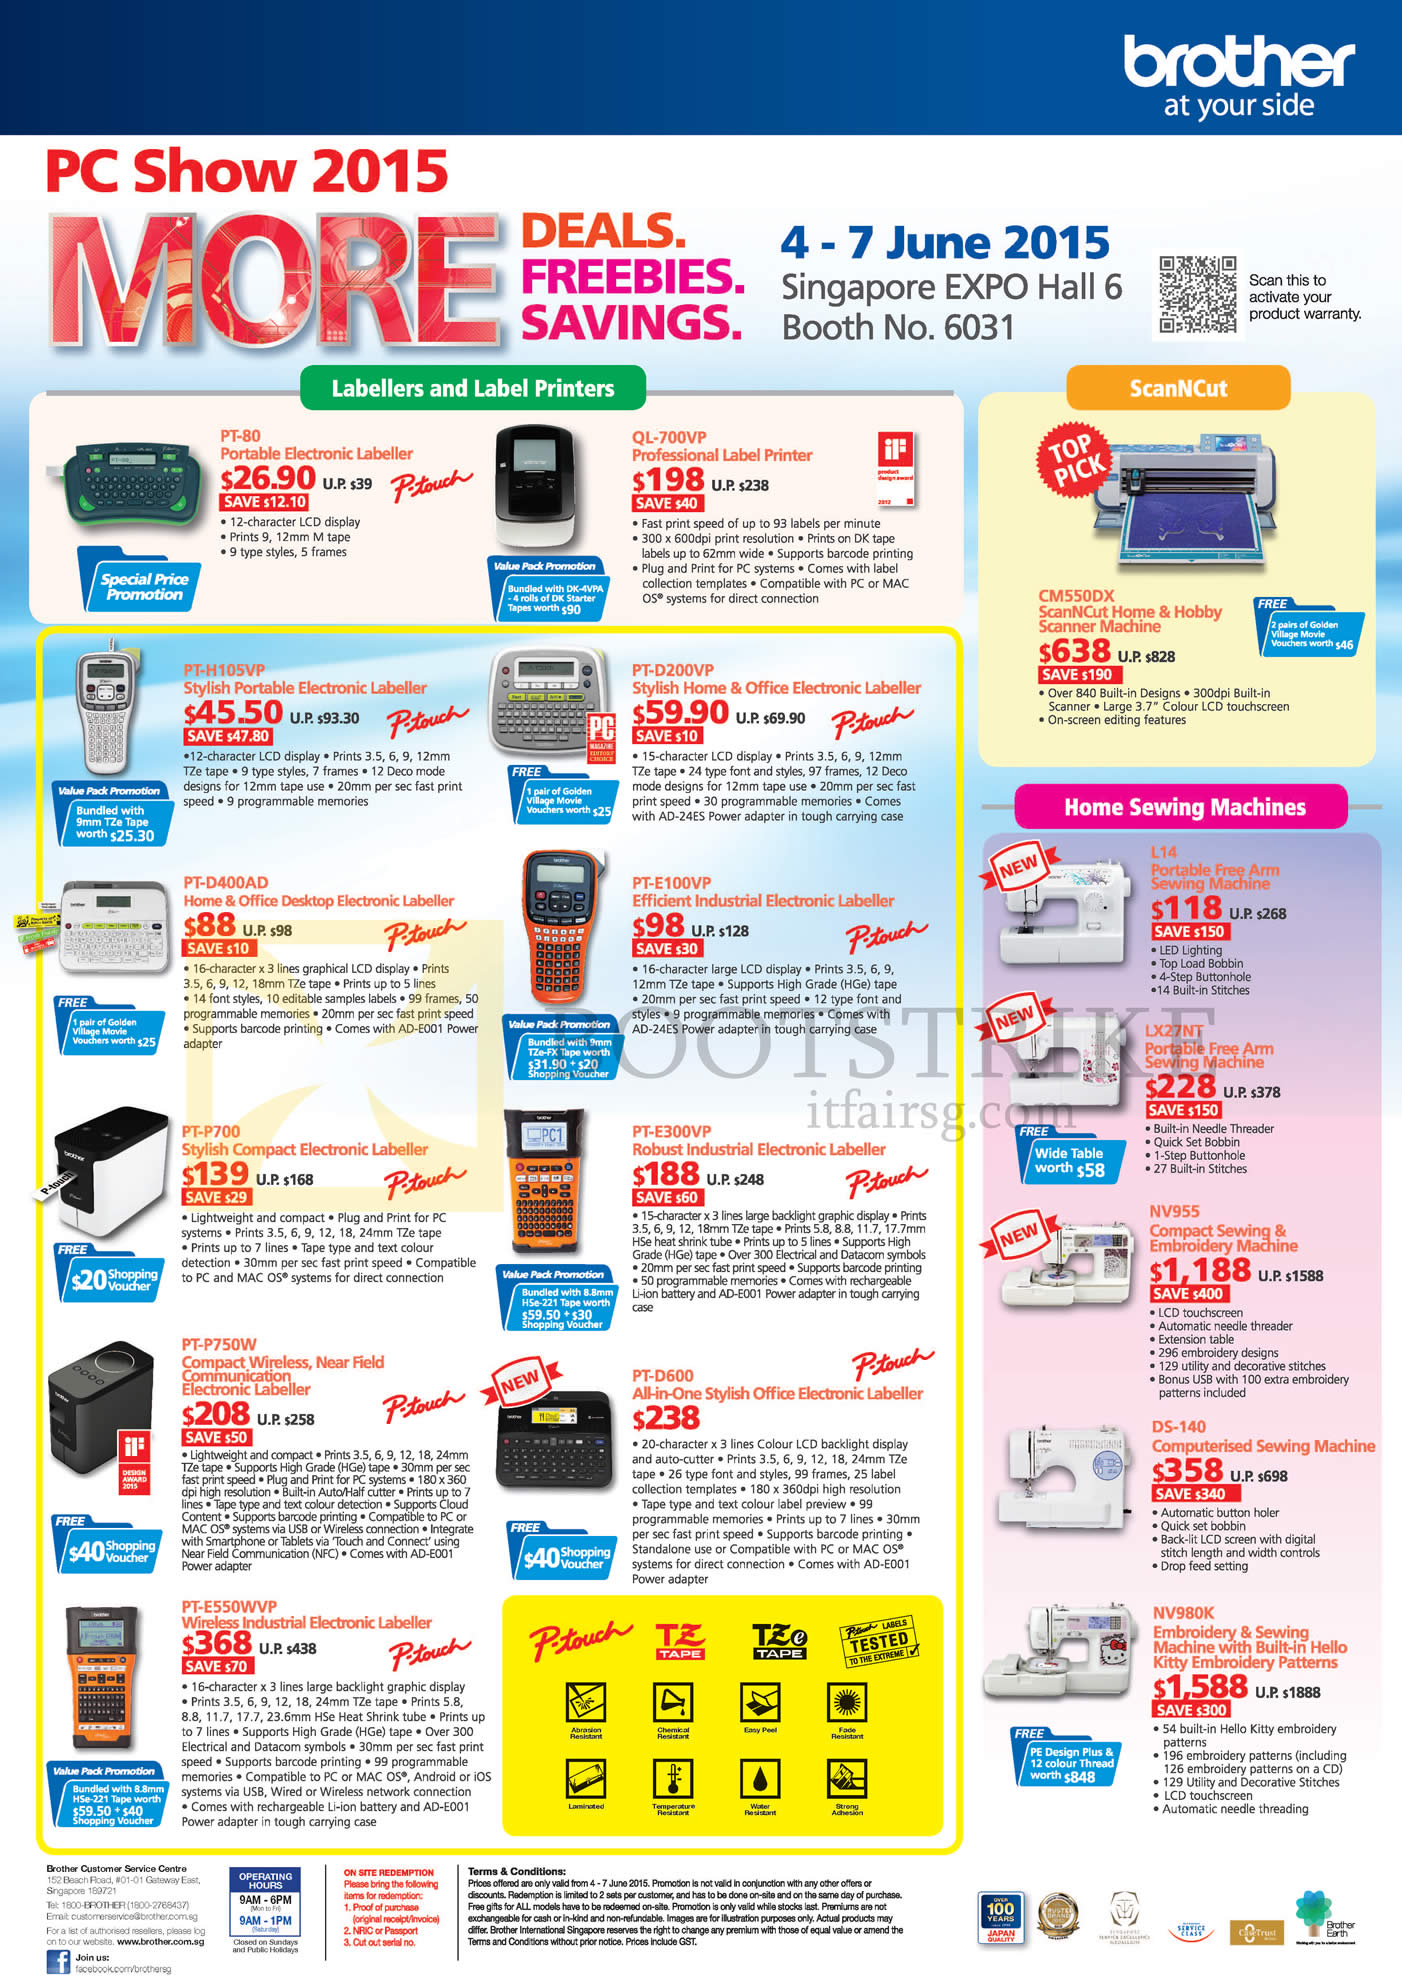 PC SHOW 2015 price list image brochure of Brother Labellers Label Printers, ScanNCut, Sewing Machines